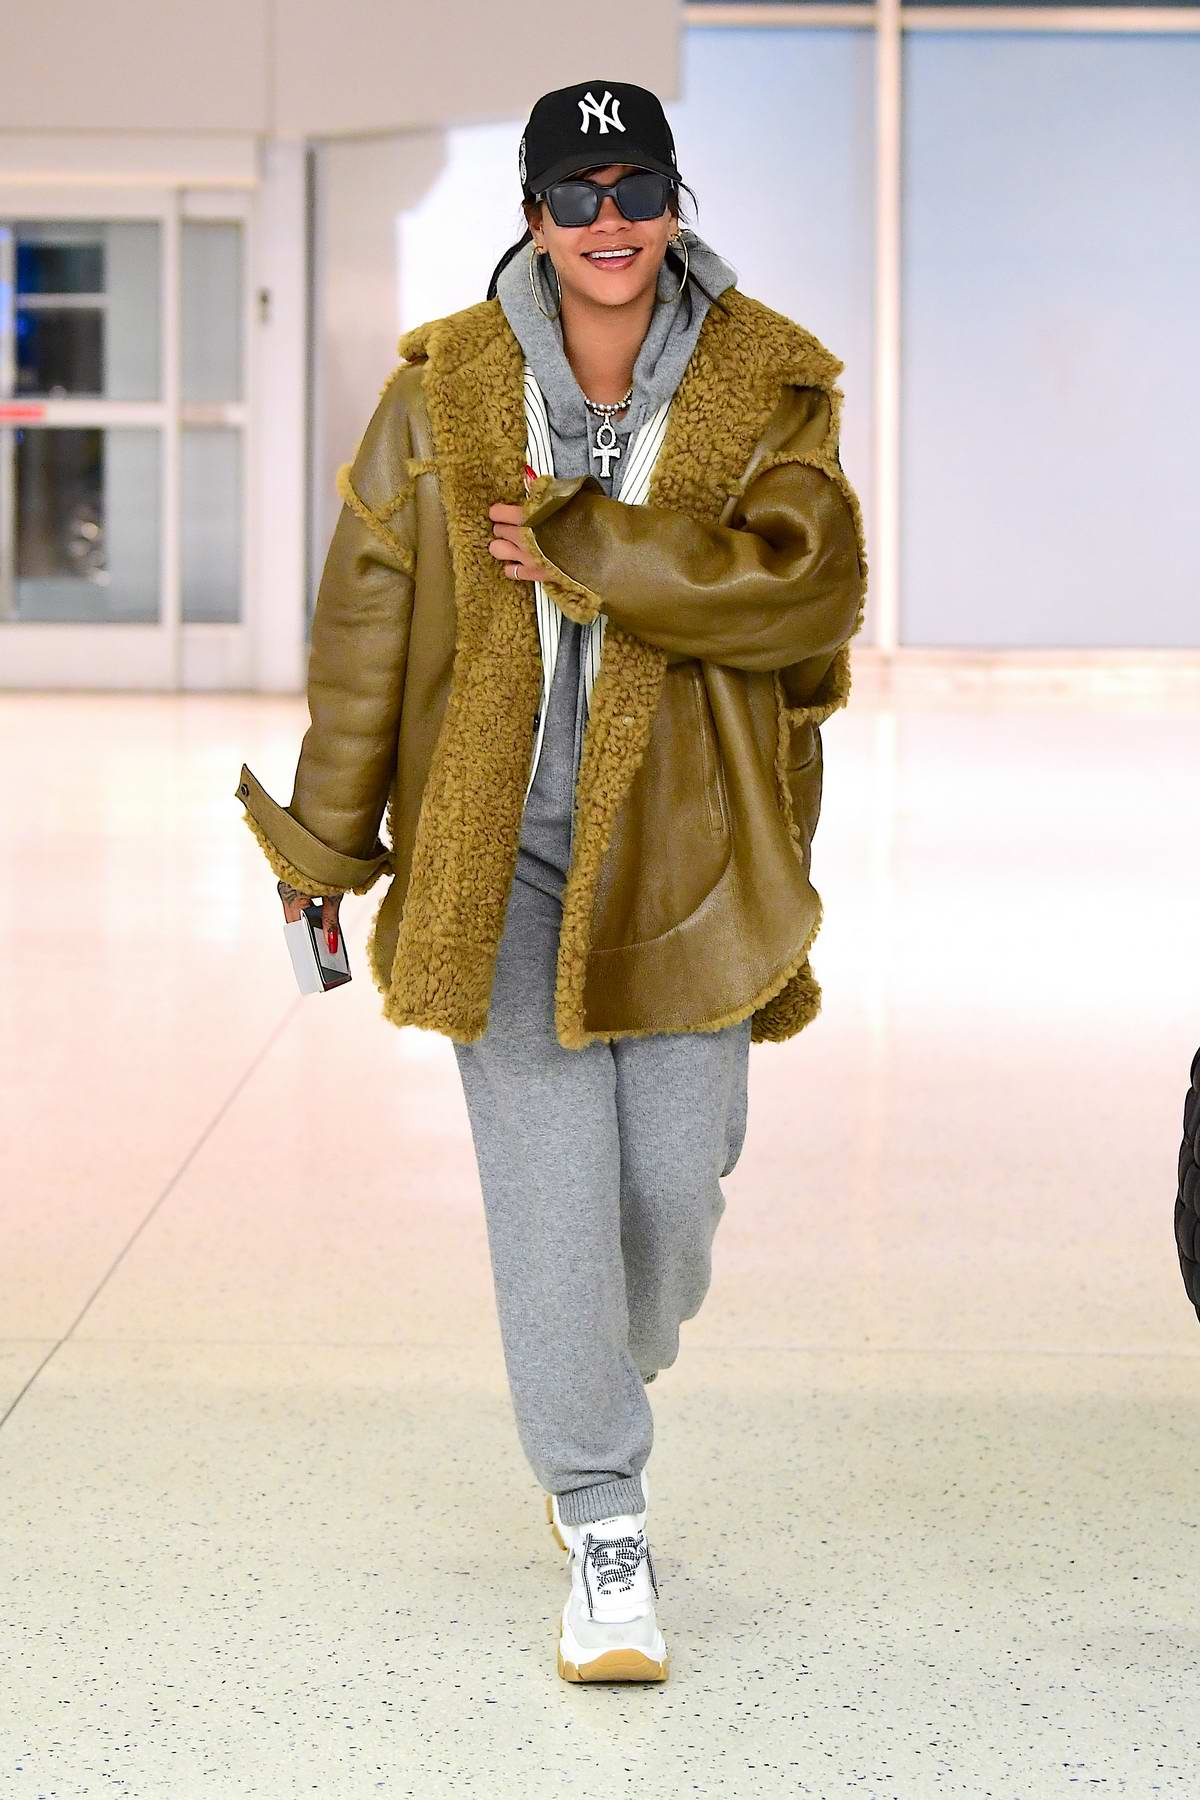 Rihanna seen wearing grey sweatsuit with her Fenty jacket as she arrives for a flight out of JFK airport in New York City